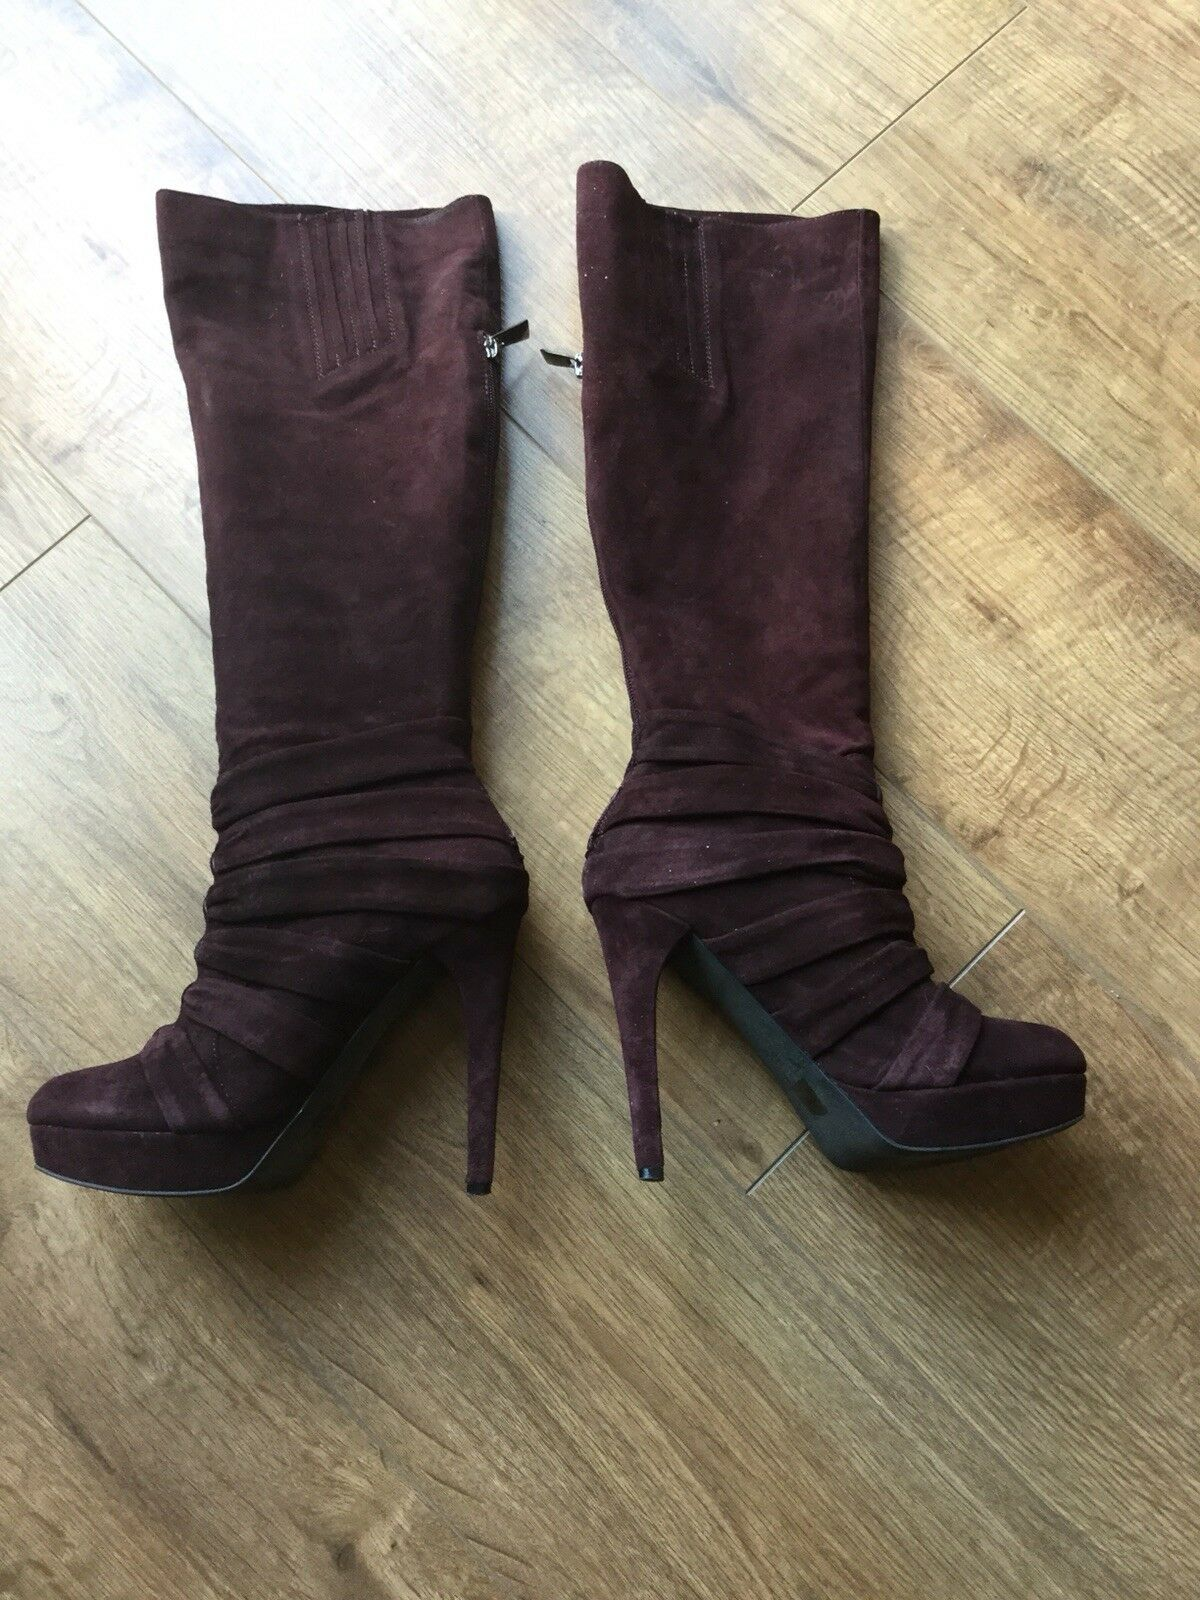 Boxed Ladies Schuh Burgundy Suede Sissy Ruched Knee High Heeled Boots Size